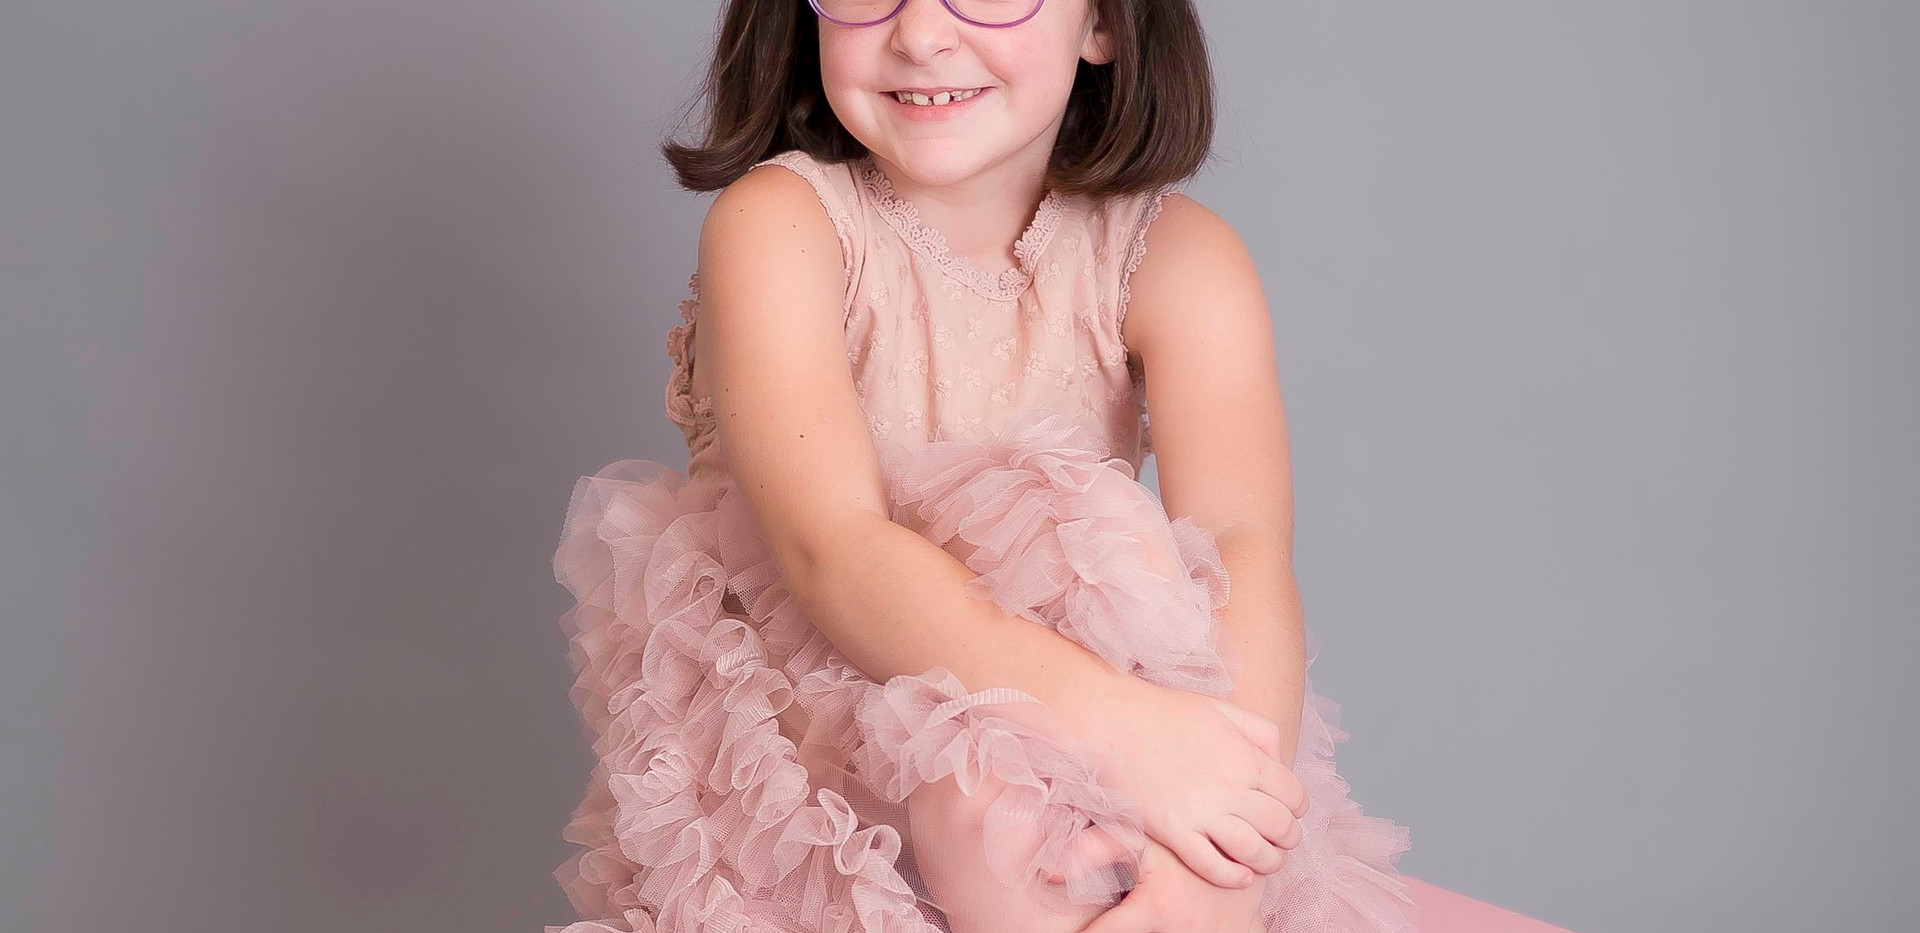 Chattanooga photo studio, girl in pink dress smiling